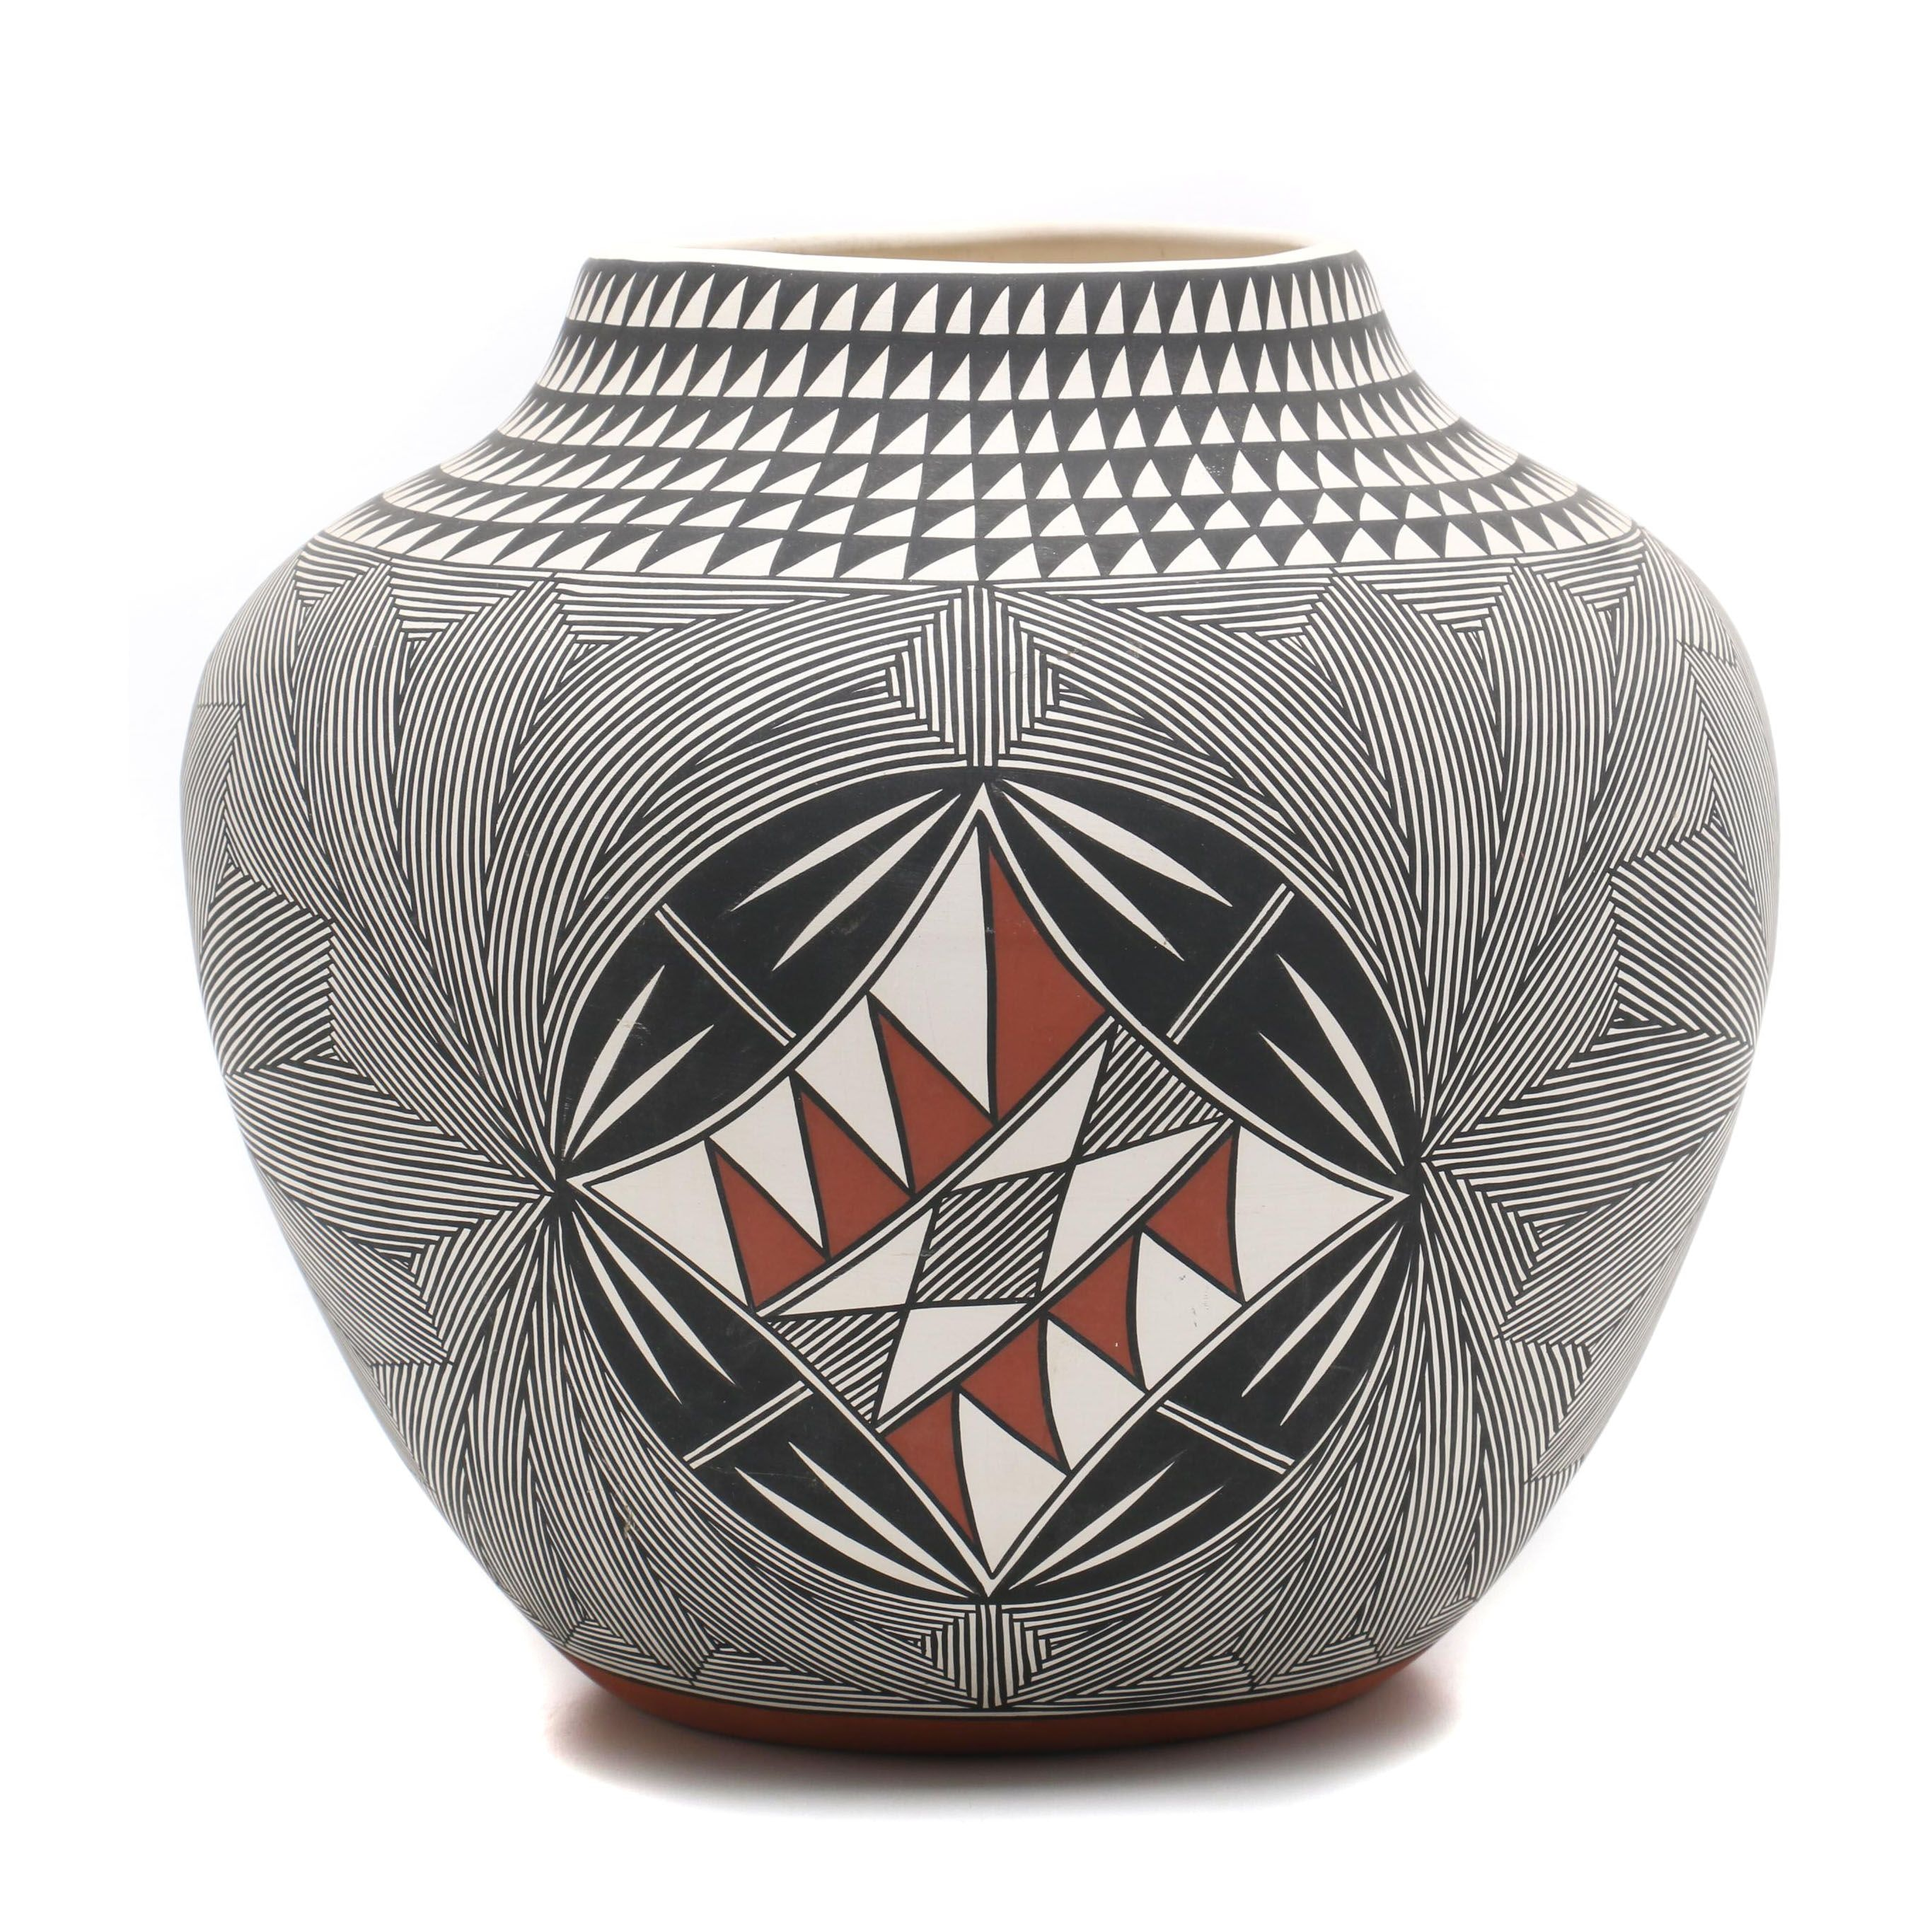 Terrance M. Chino, Sr. Acoma Hand-Painted Earthenware Seed Pot